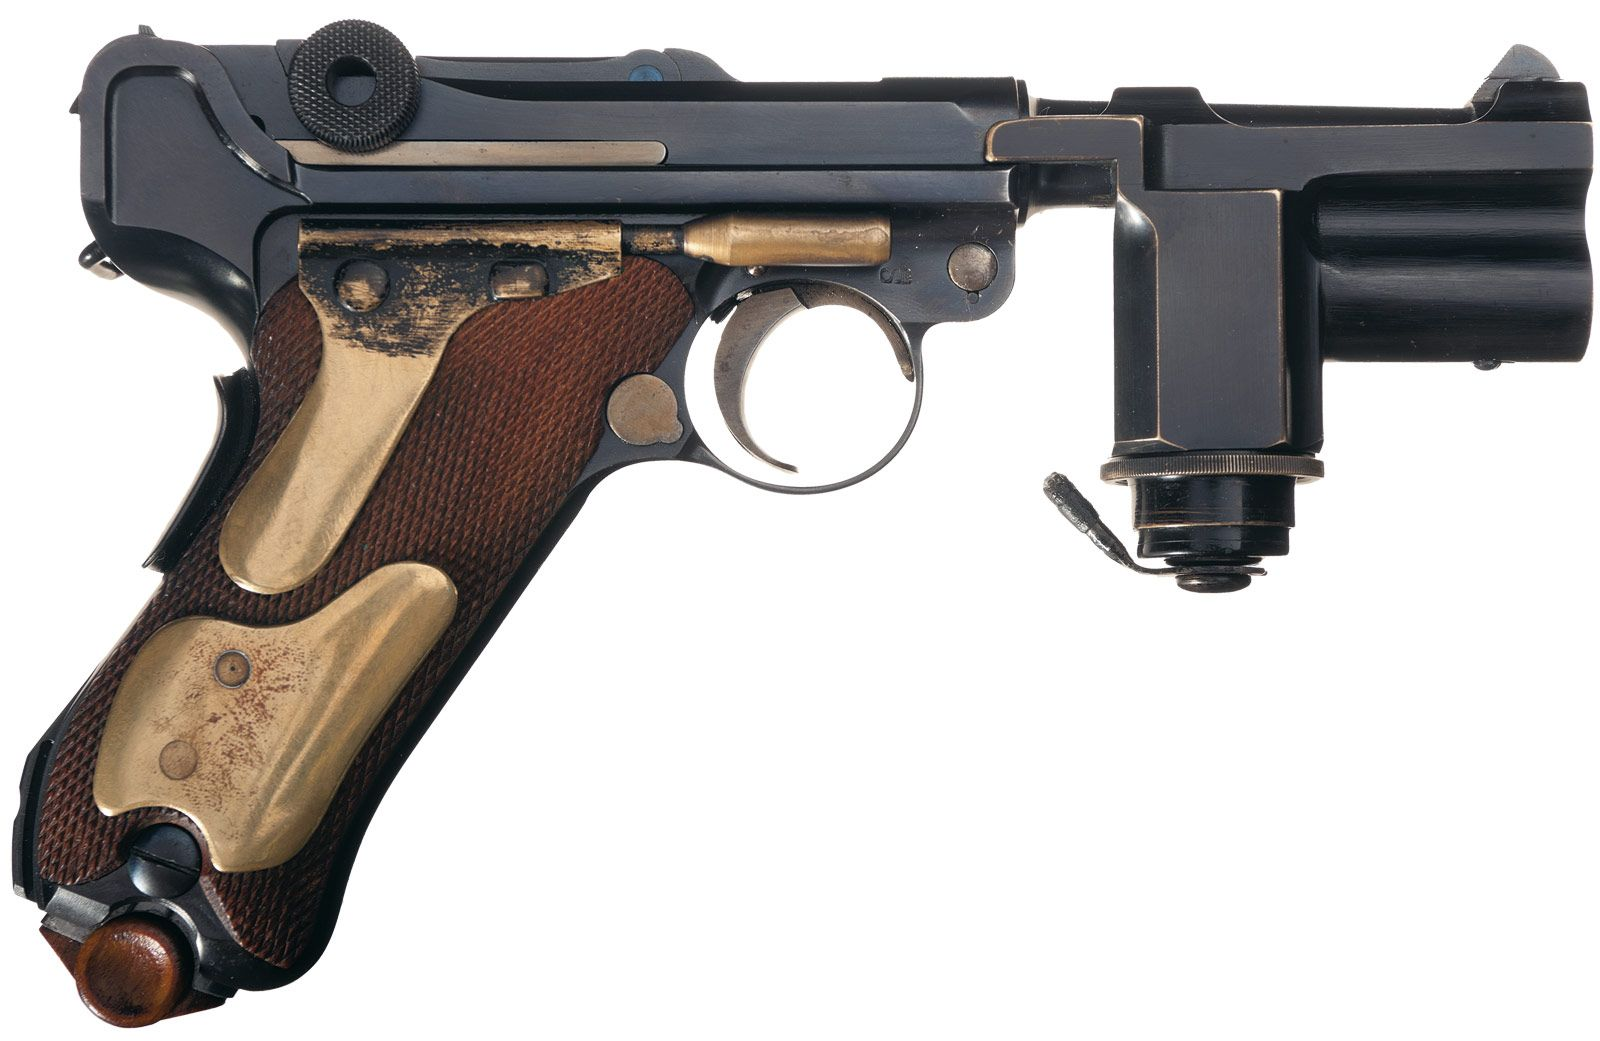 Hitler Guard Night Pistol Luger With Touch Activated Flashlight Diagram Http Wwwbevfitchettus Springfield1911a1pistols Exploded This Is The Only Example Of And Holster Know To Ever Be Offered